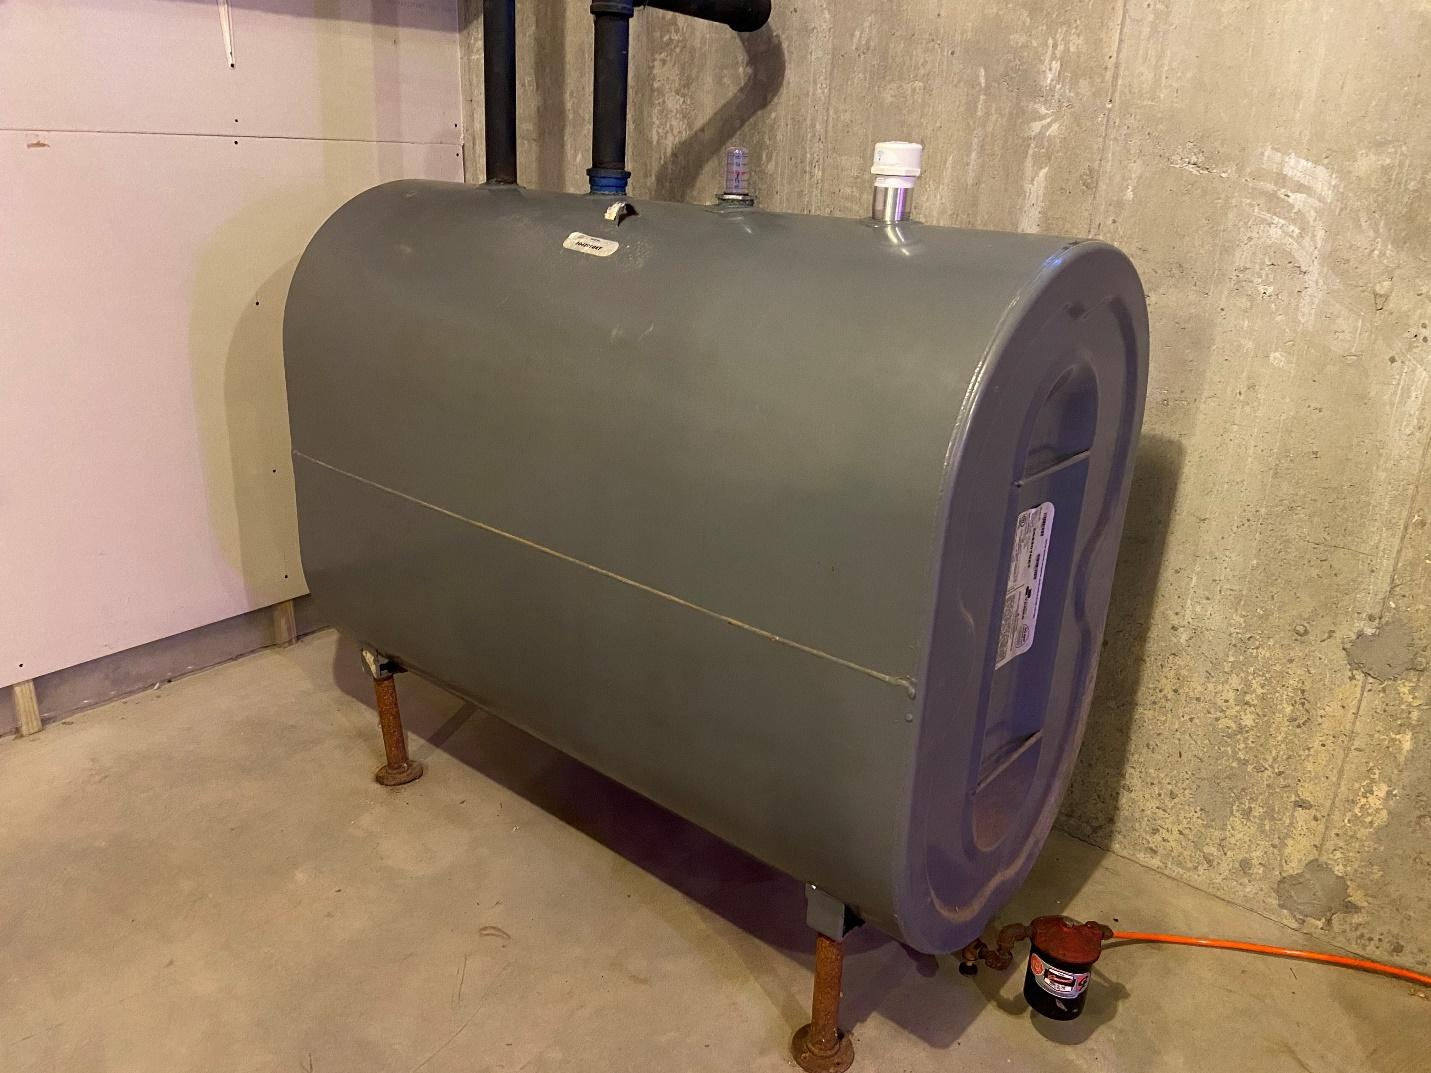 A dry basement is the best place for a home heating oil tank to be stored. Since moisture is the enemy of a steel tank like this, ensuring it stays dry is the best thing you can do to extend the life of your oil tank.